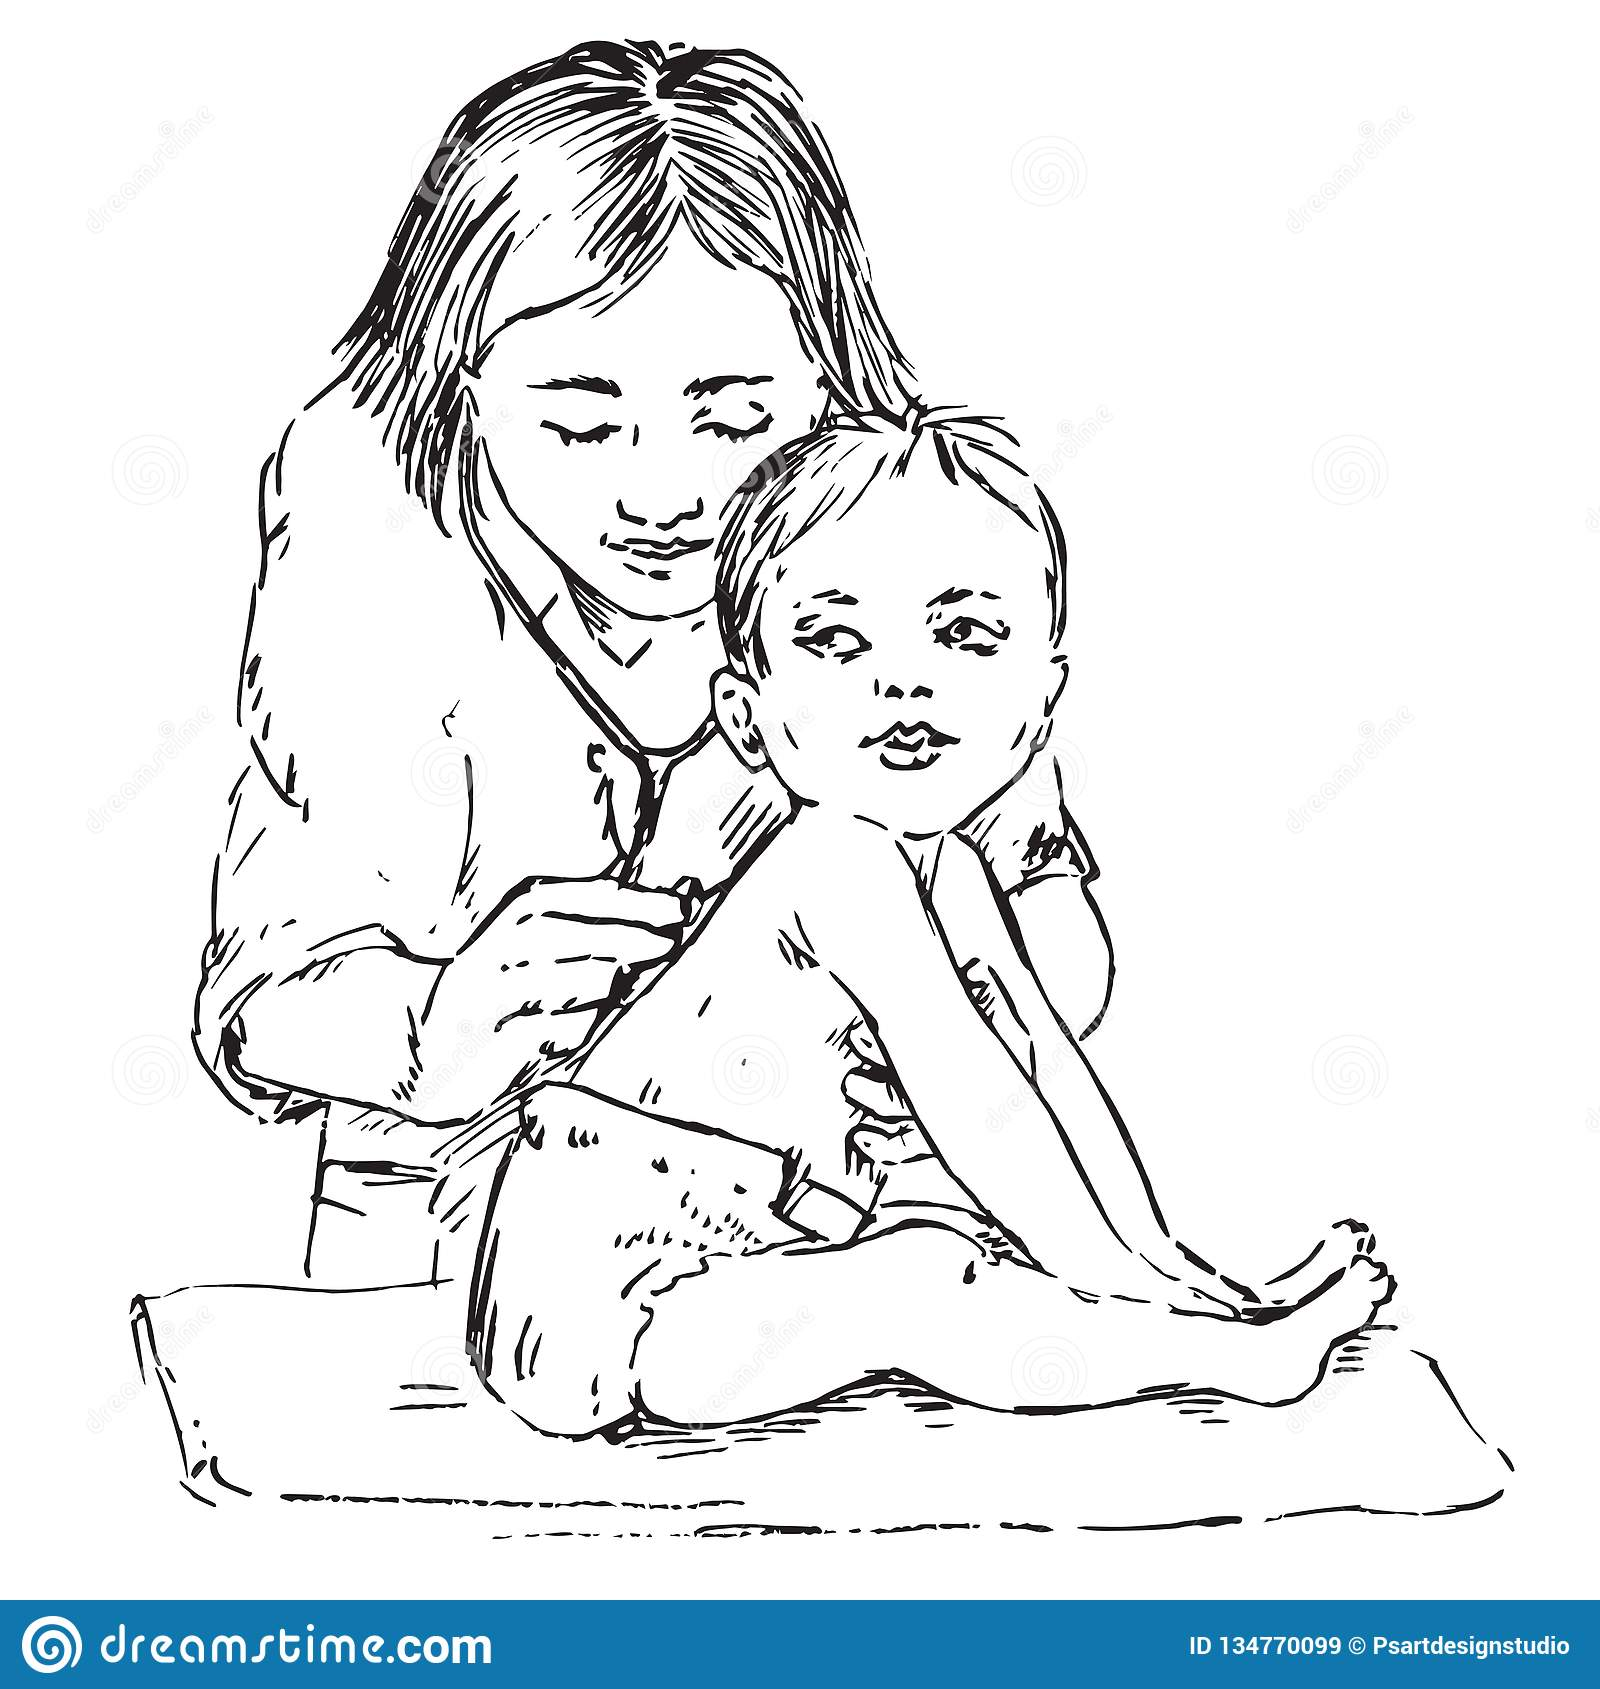 Baby and pediatrician, listening with stethoscope, hand drawn doodle, sketch